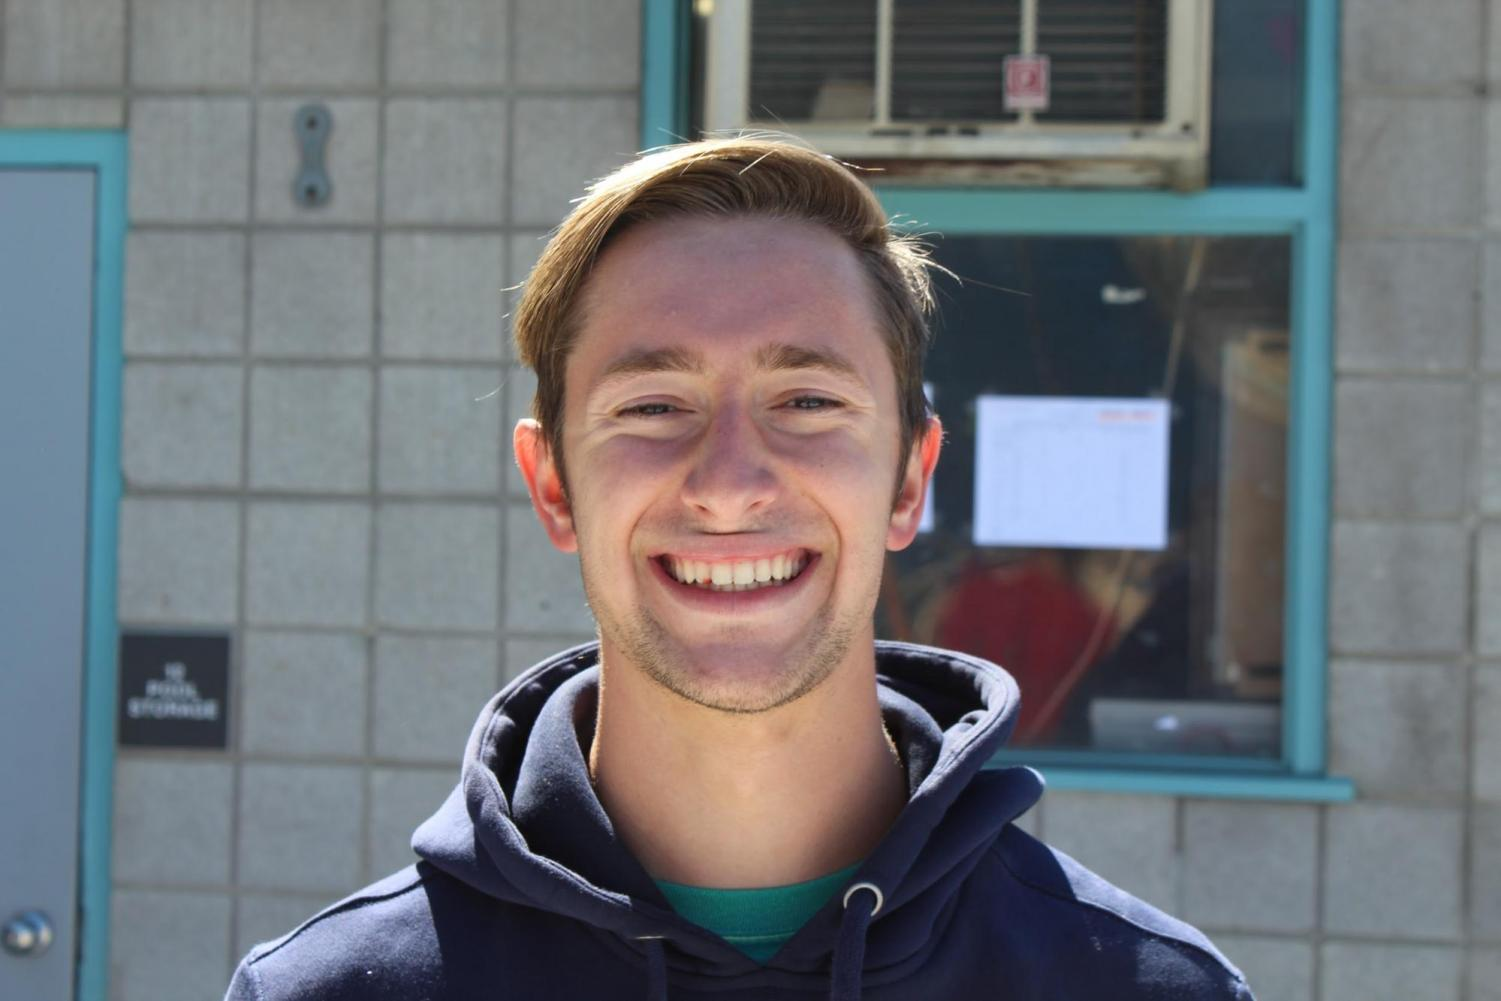 """I like how the class search is easy to find now."" Denver Noell, 19, Civil Engineering"